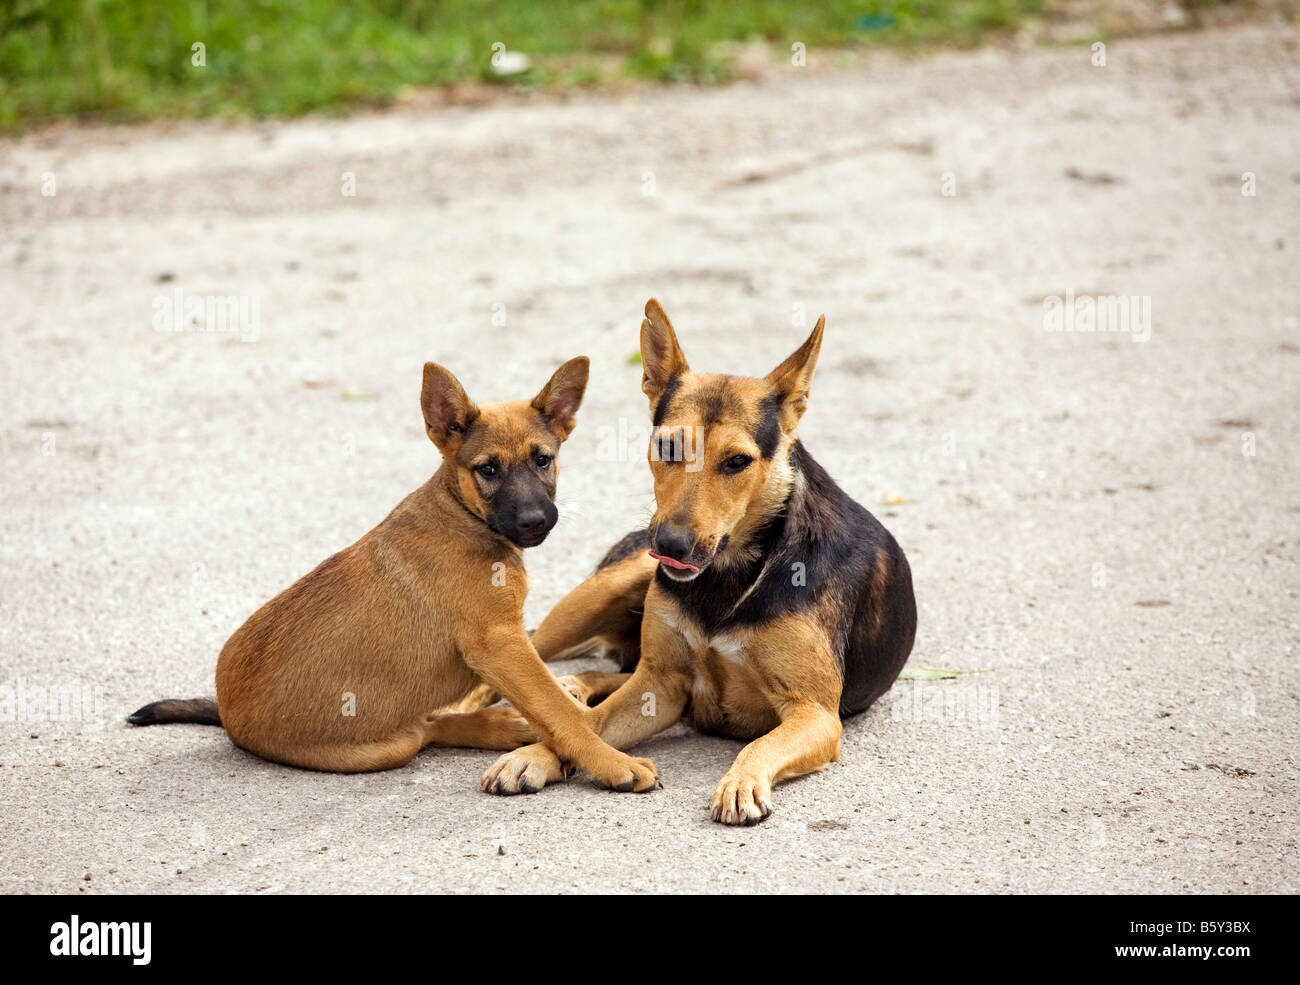 Dogs posing for camera - Stock Image